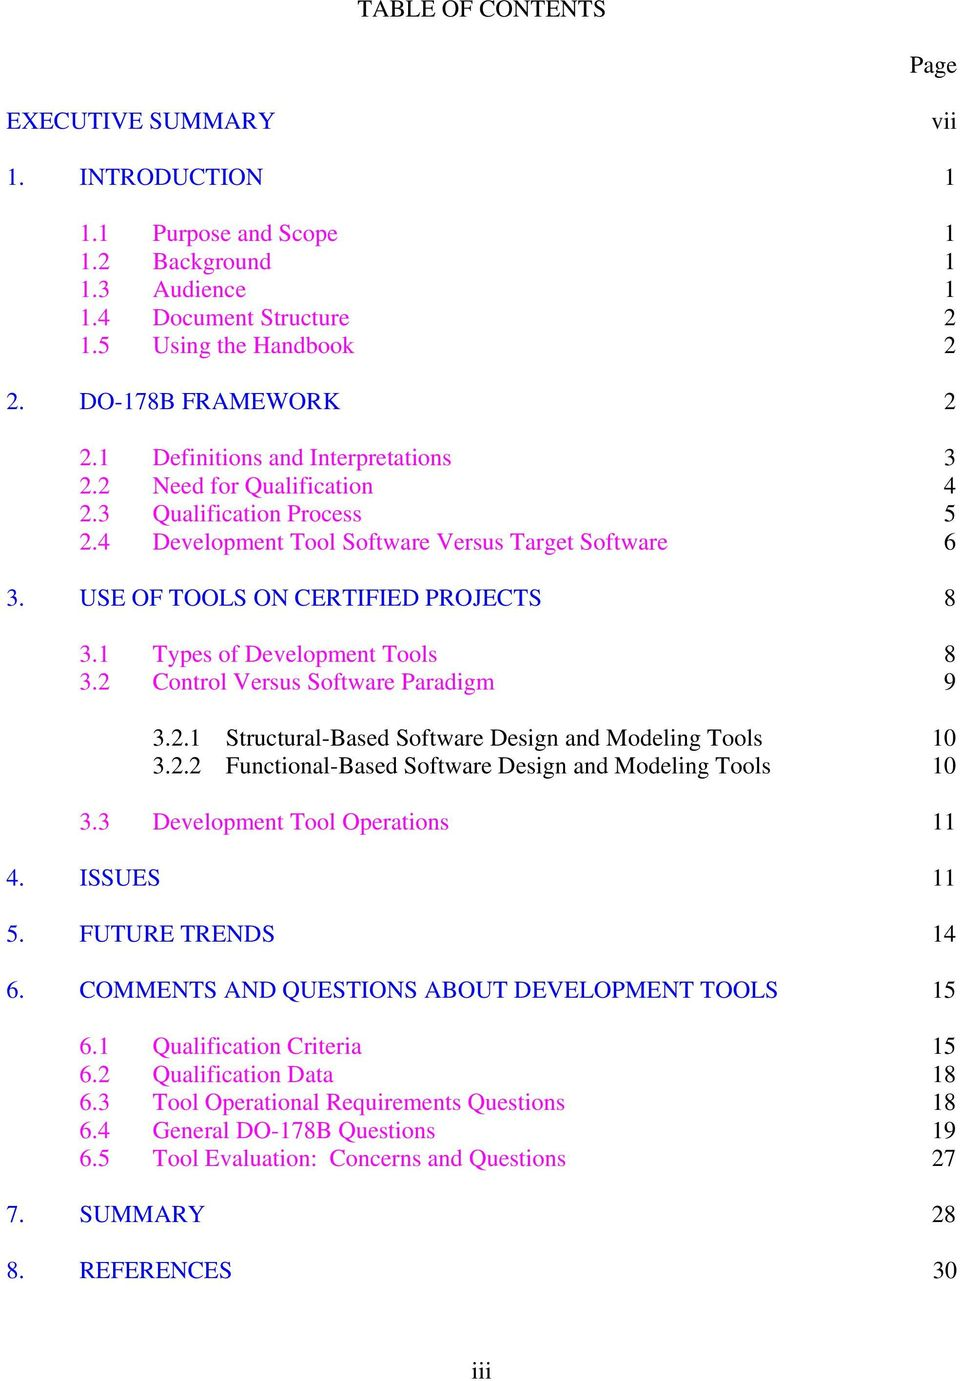 1 Types of Development Tools 8 3.2 Control Versus Software Paradigm 9 3.2.1 Structural-Based Software Design and Modeling Tools 10 3.2.2 Functional-Based Software Design and Modeling Tools 10 3.